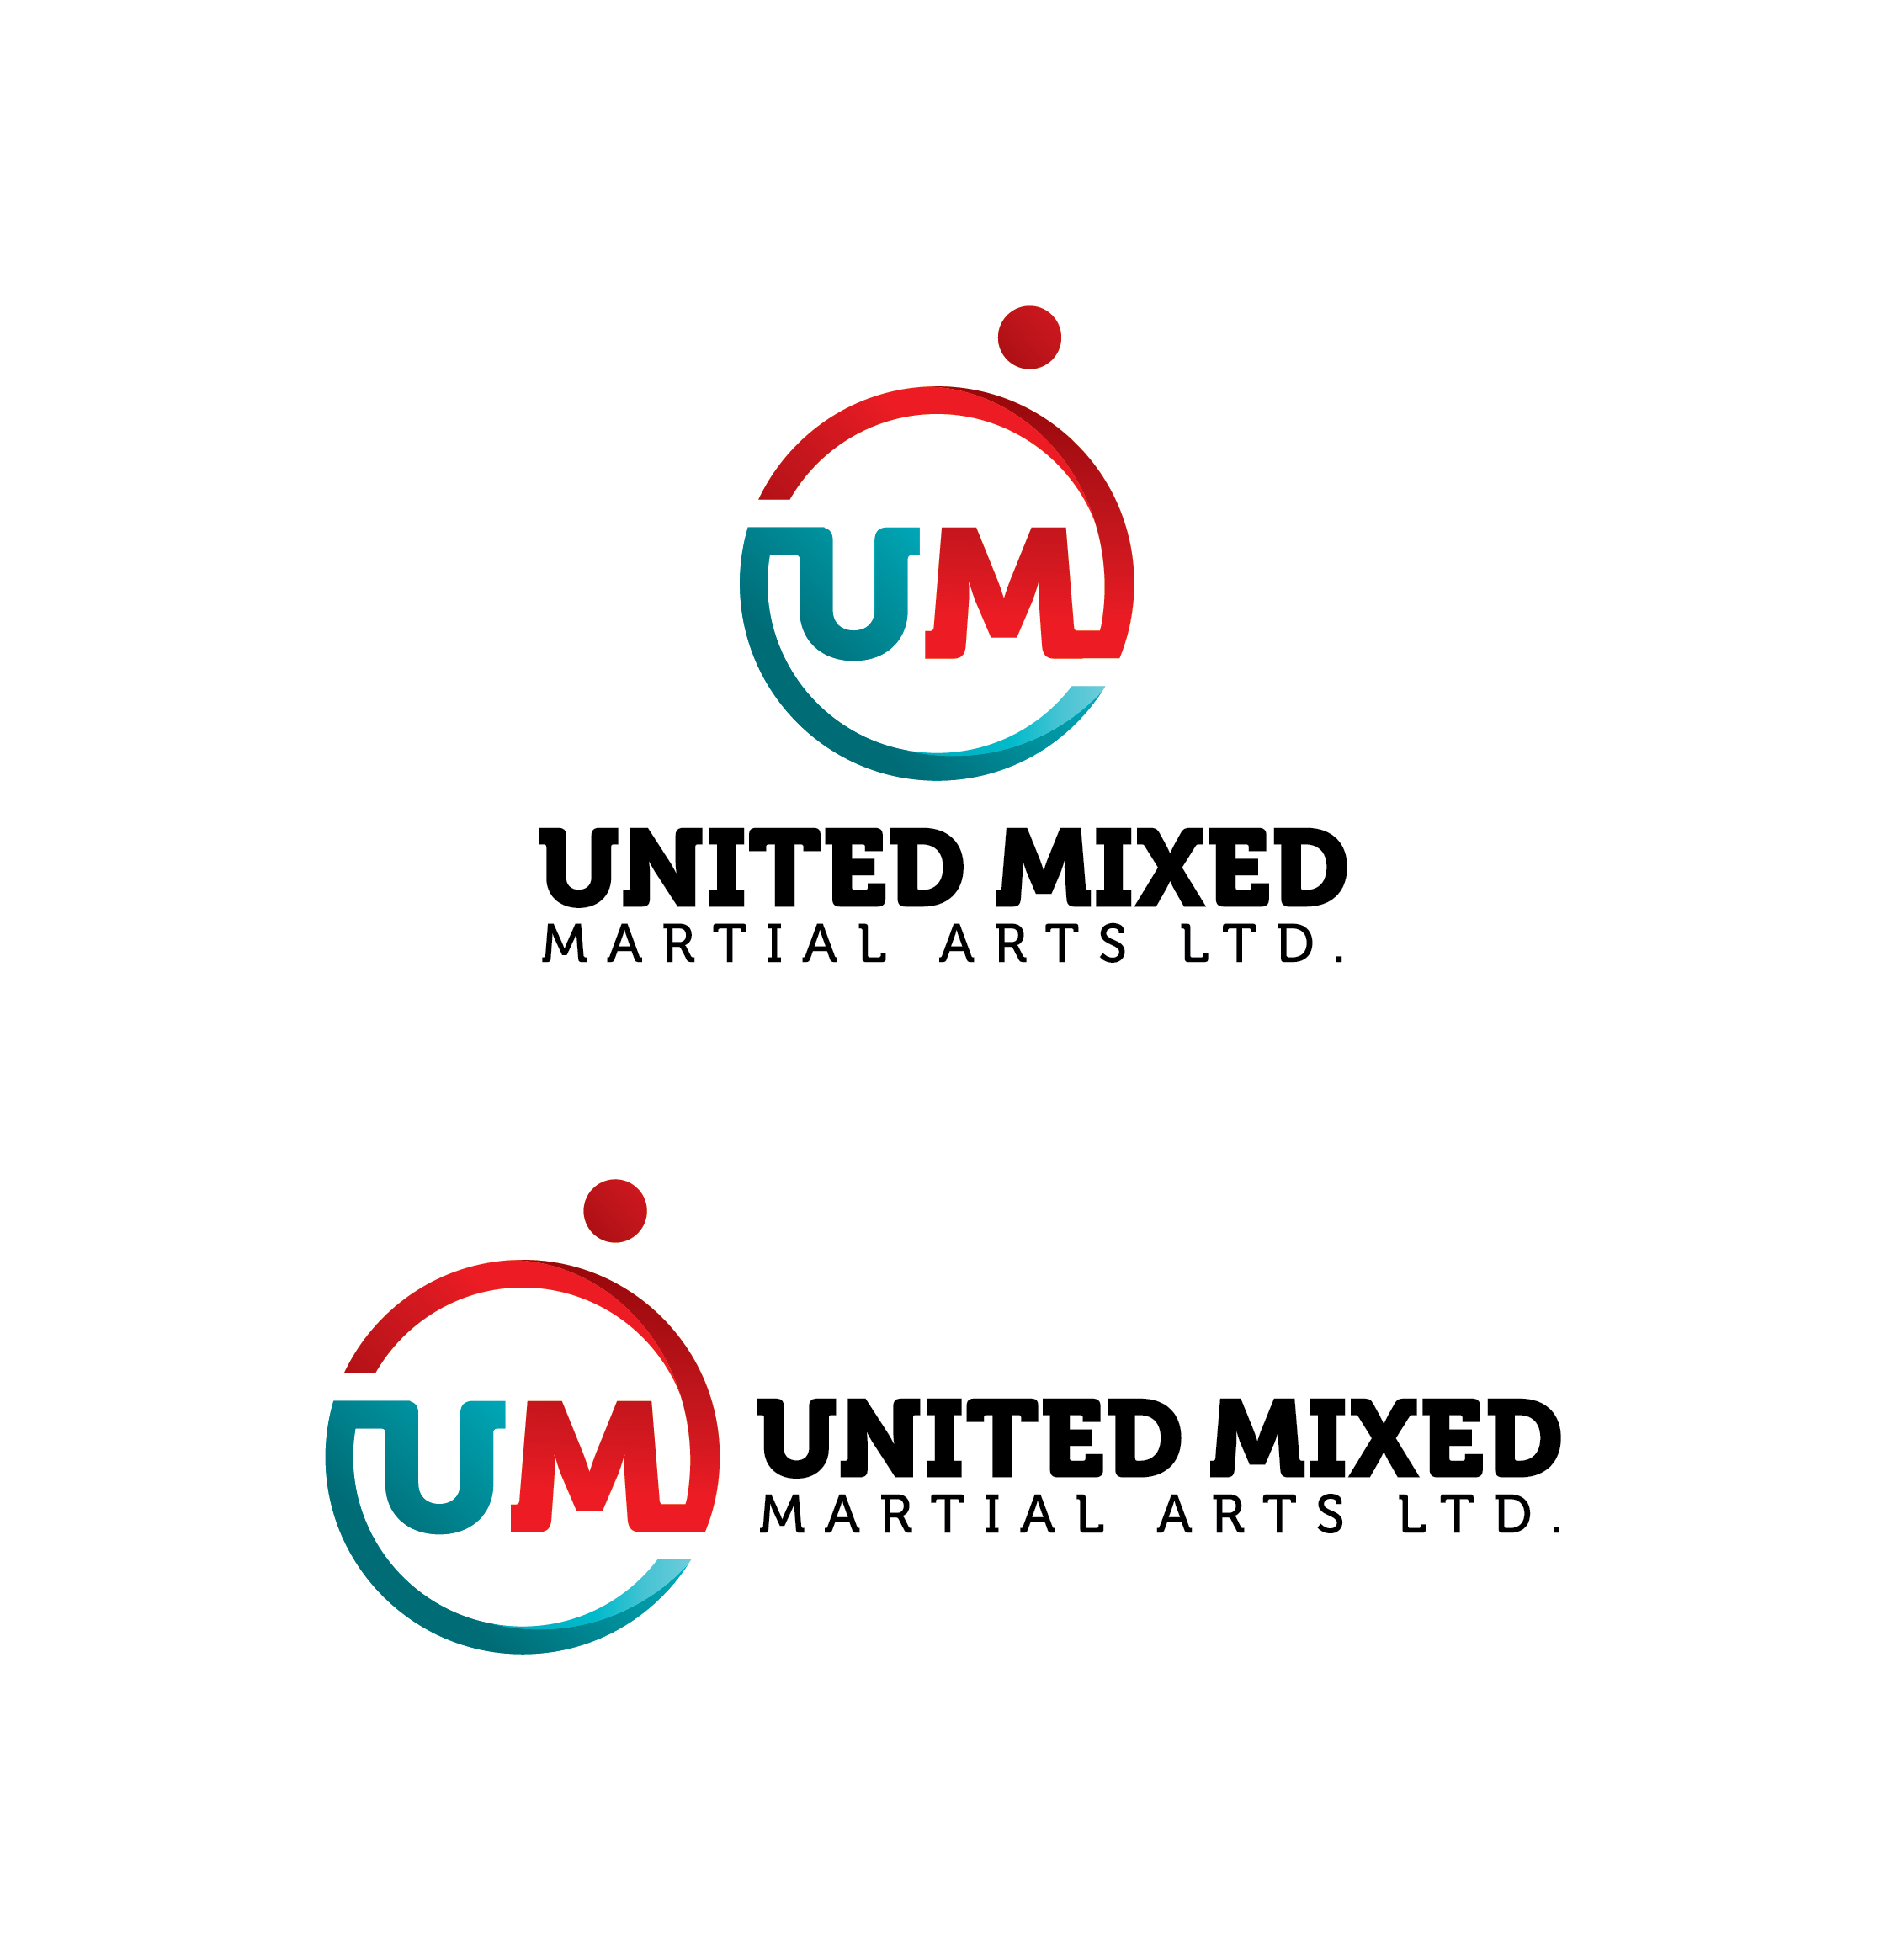 Logo Design by Prohor Ghagra - Entry No. 74 in the Logo Design Contest Artistic Logo Design for United Mixed Martial Arts Ltd..